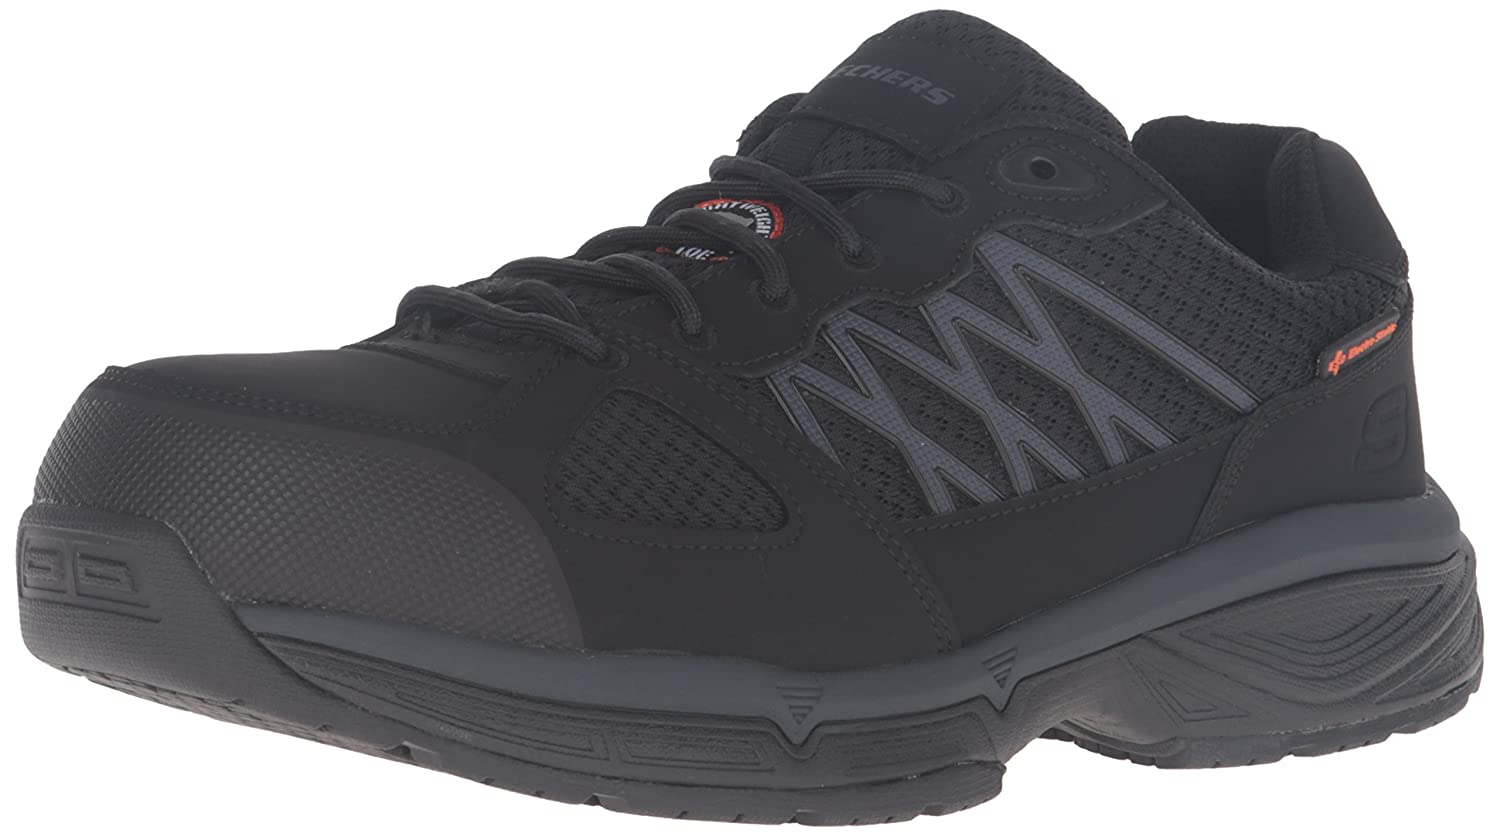 Skechers for Work Conroe Kriel Zapatos Antideslizantes para